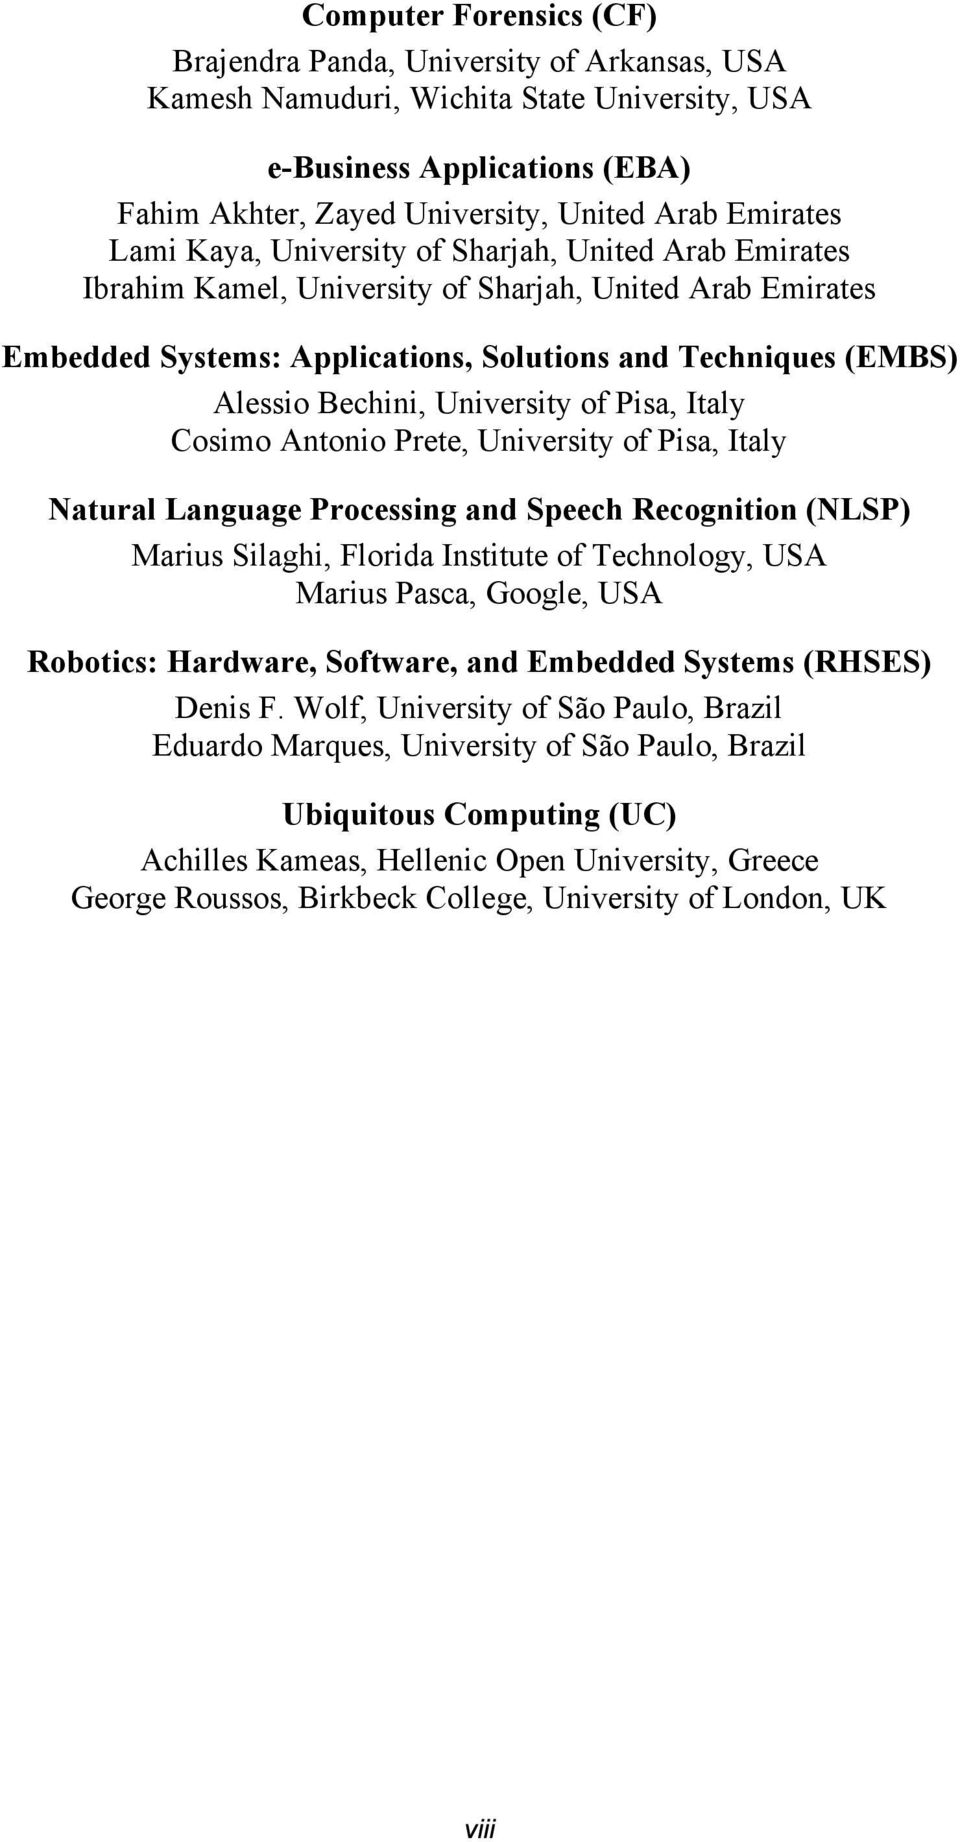 University of Pisa, Italy Cosimo Antonio Prete, University of Pisa, Italy Natural Language Processing and Speech Recognition (NLSP) Marius Silaghi, Florida Institute of Technology, USA Marius Pasca,